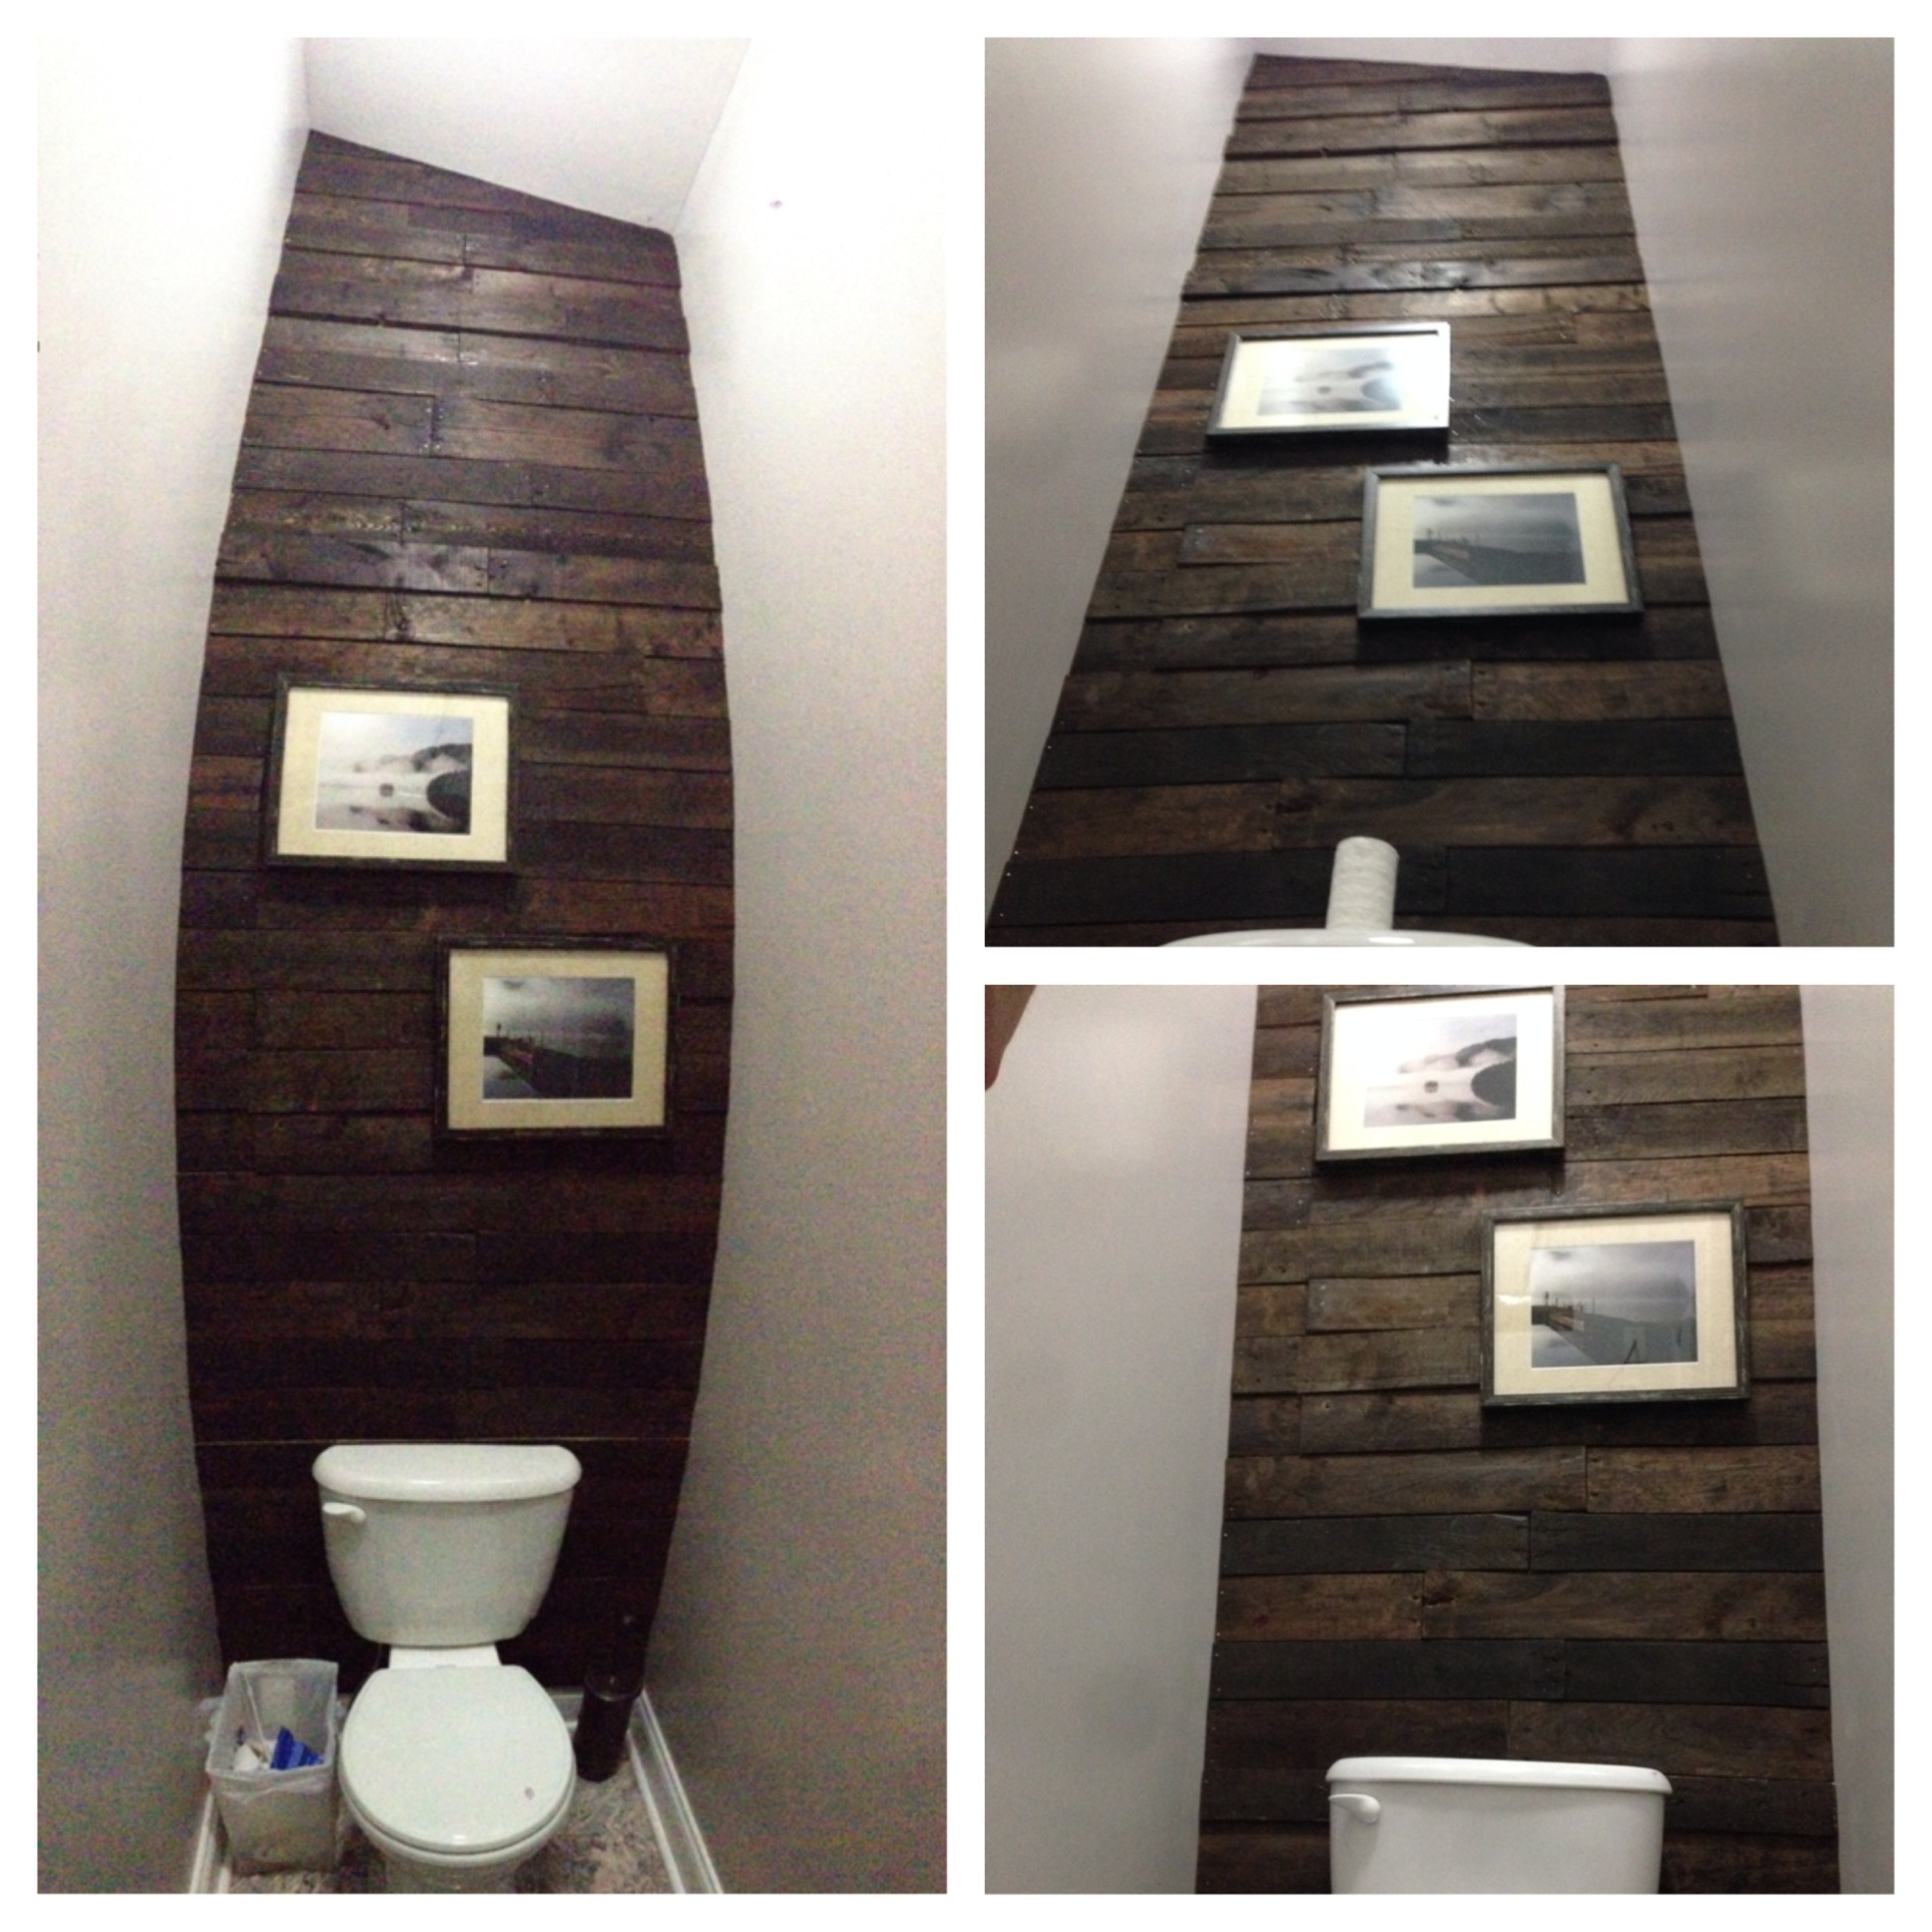 Pallet Accent Wall In Water Closet – Cut Up About 7 Pallets To Get Throughout Best And Newest Wall Accents Behind Toilet (View 3 of 15)